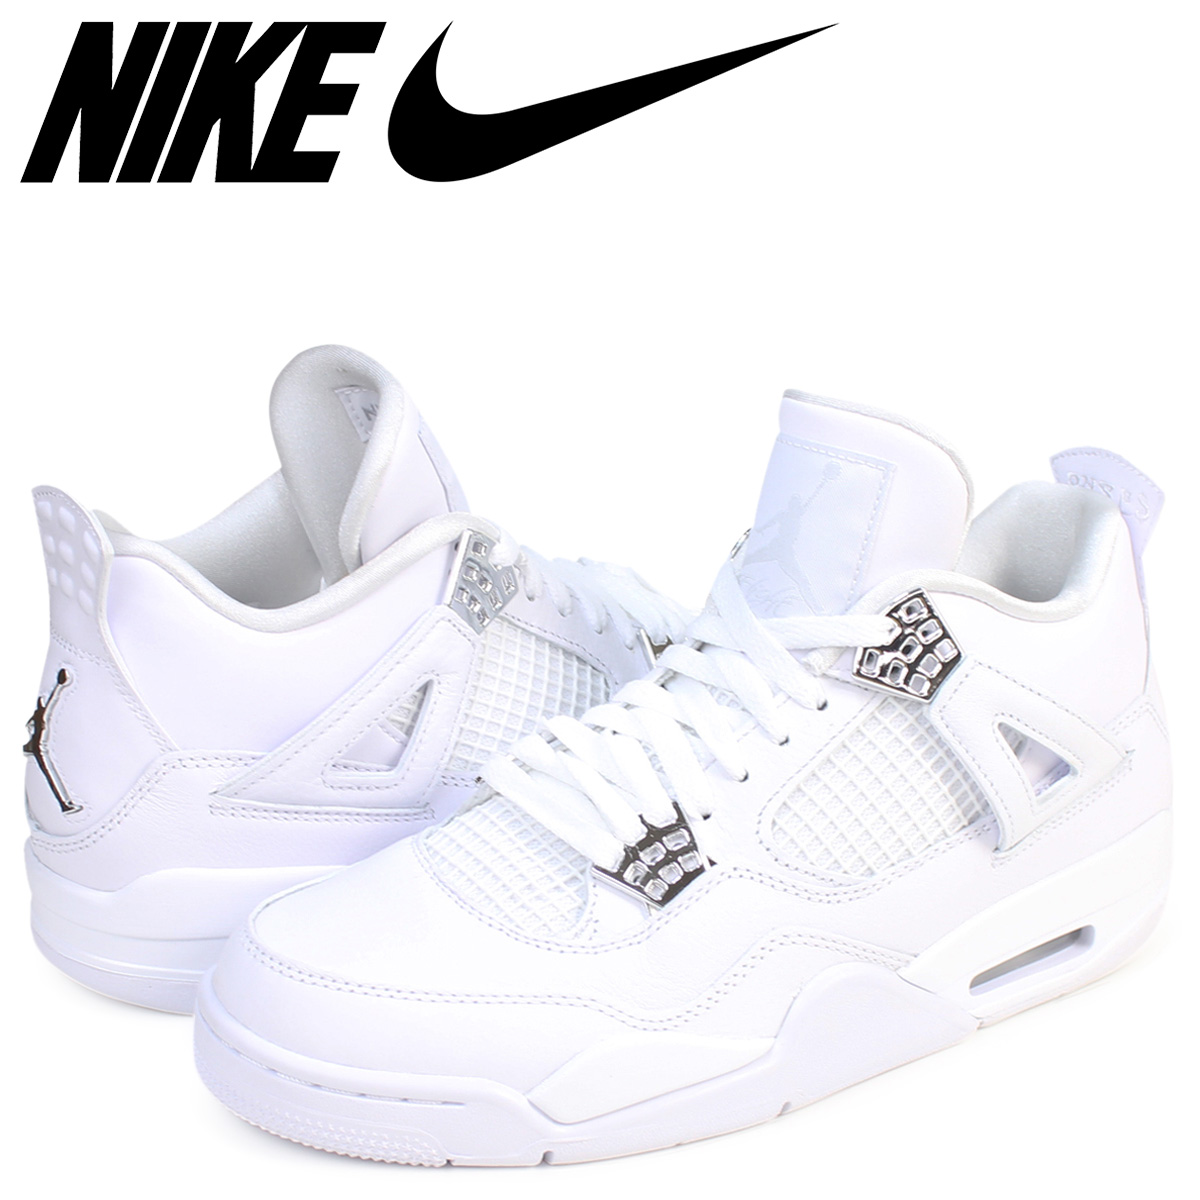 finest selection 16ff5 616c0 NIKE AIR JORDAN 4 RETRO PURE MONEY Nike Air Jordan 4 nostalgic sneakers men  308,497-100 white